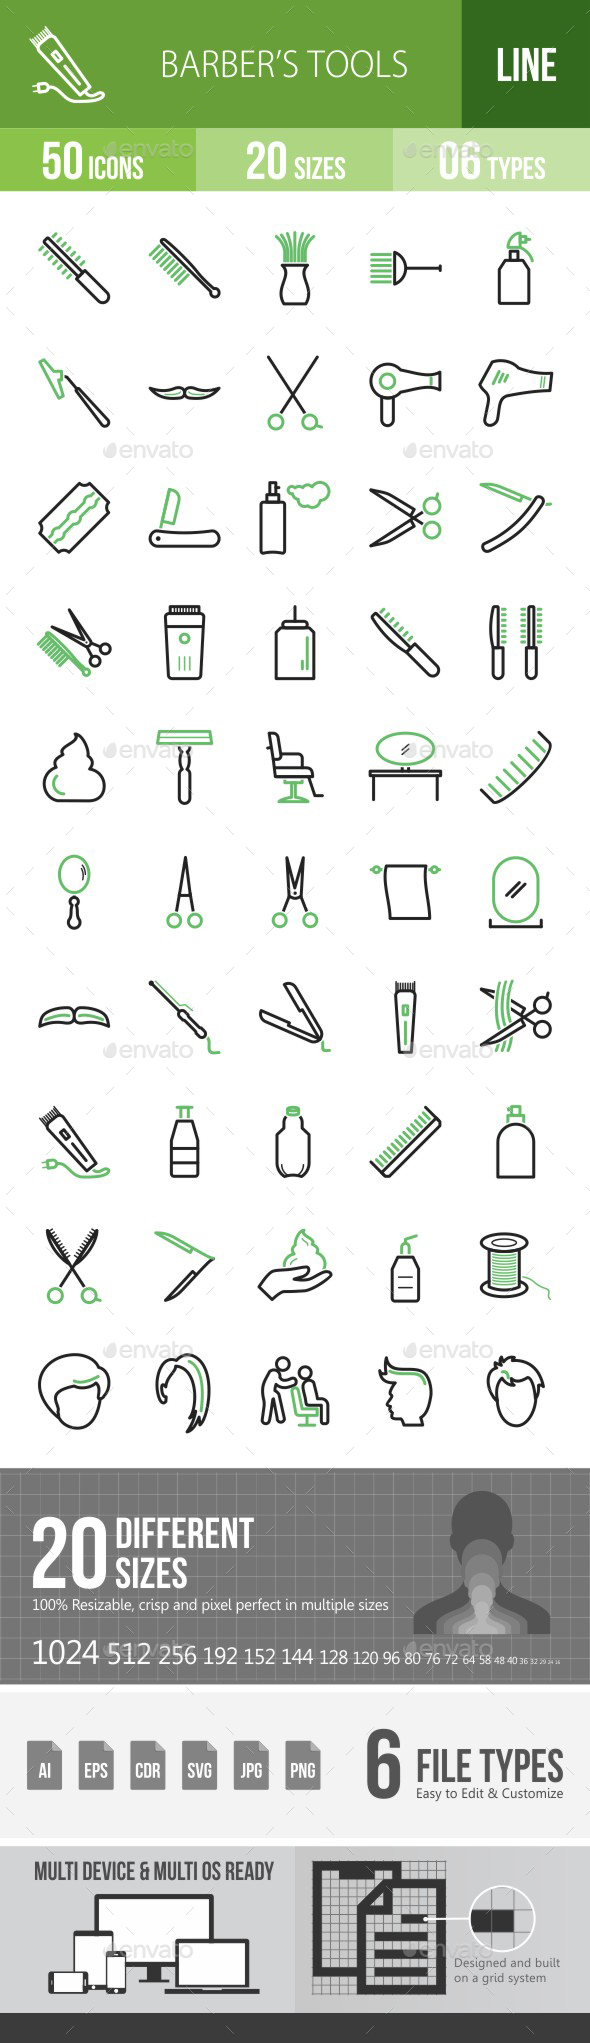 Barber's Tools Green & Black Icons - Icons